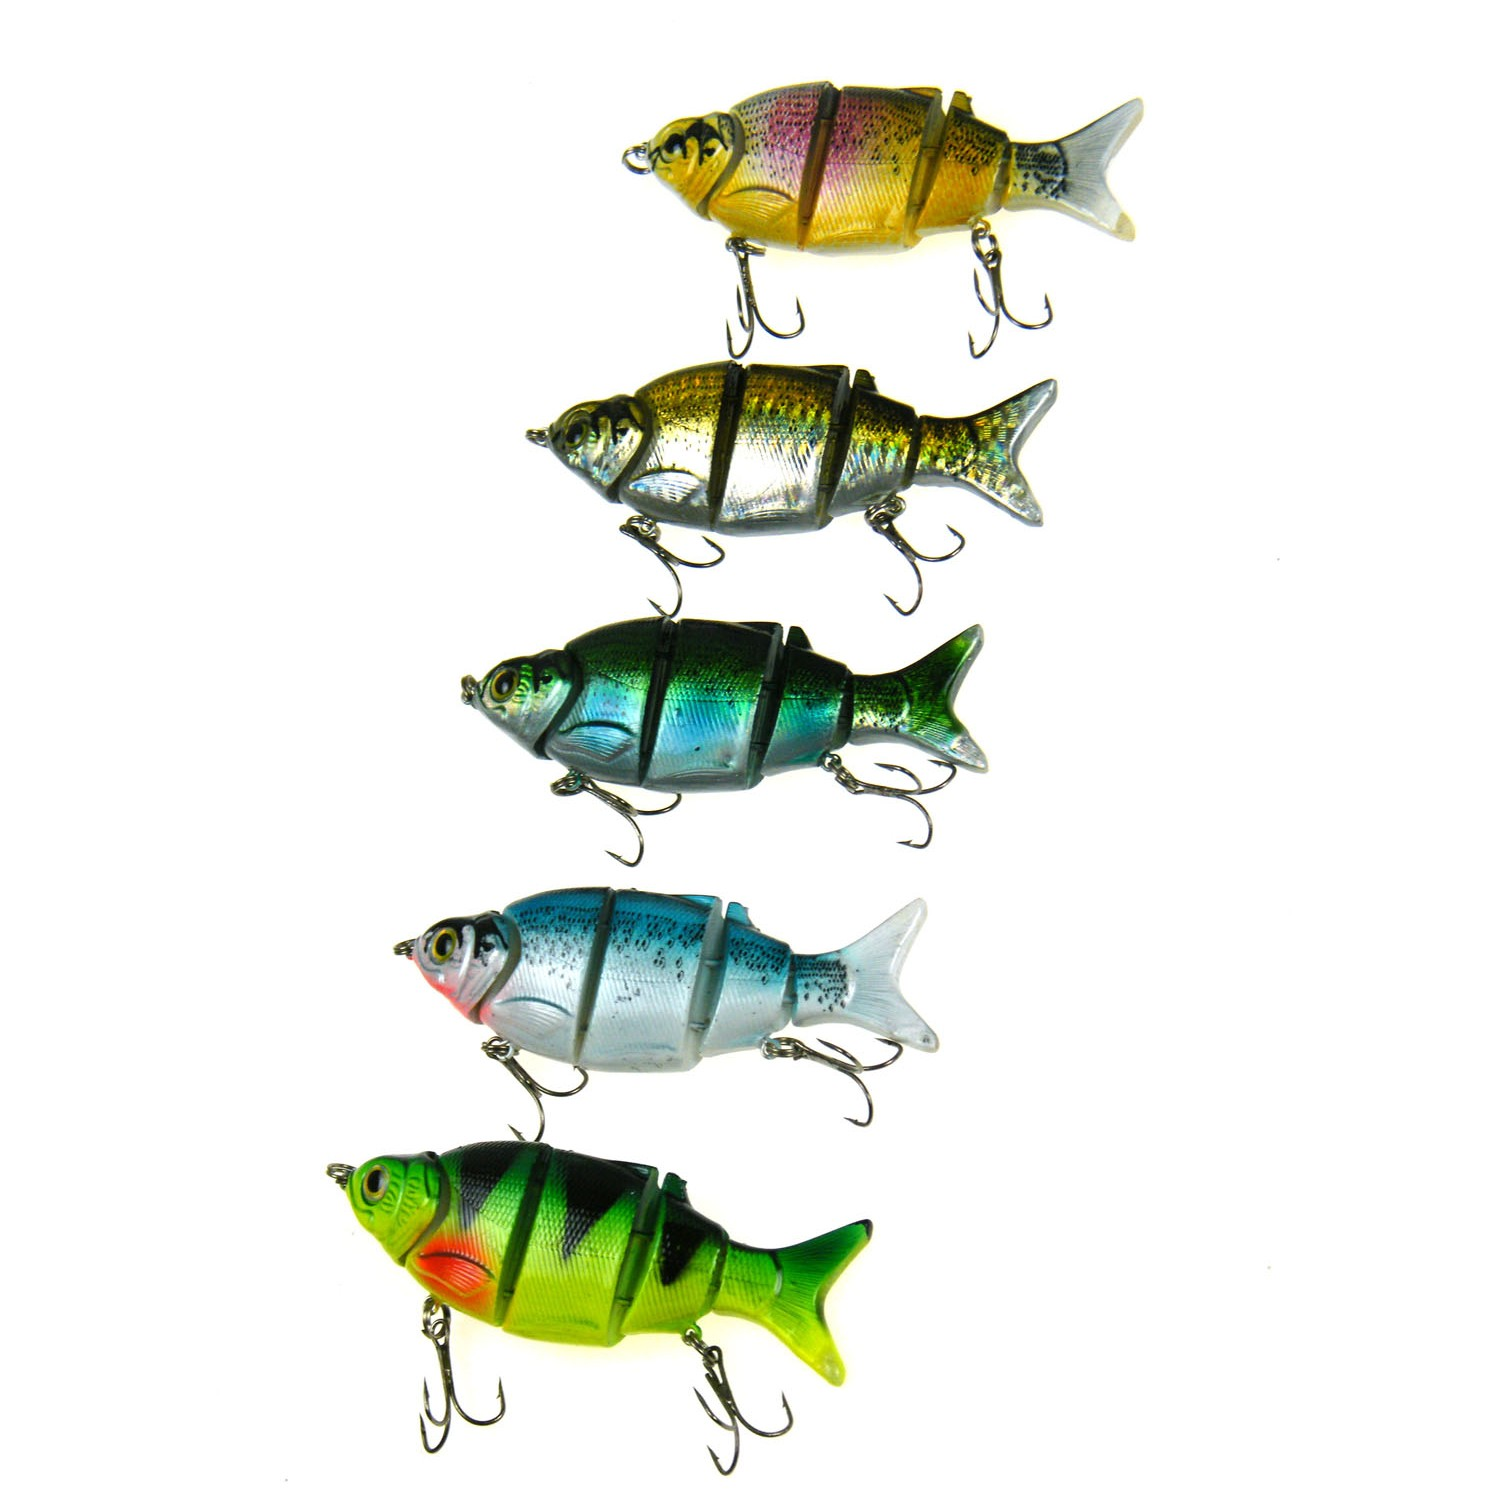 5Pcs set Hard Lures Baits 10cm 25g 3D Eyes Jointed 5 segments Sections Lifelike Artificial Lures Fishing Lure With... by